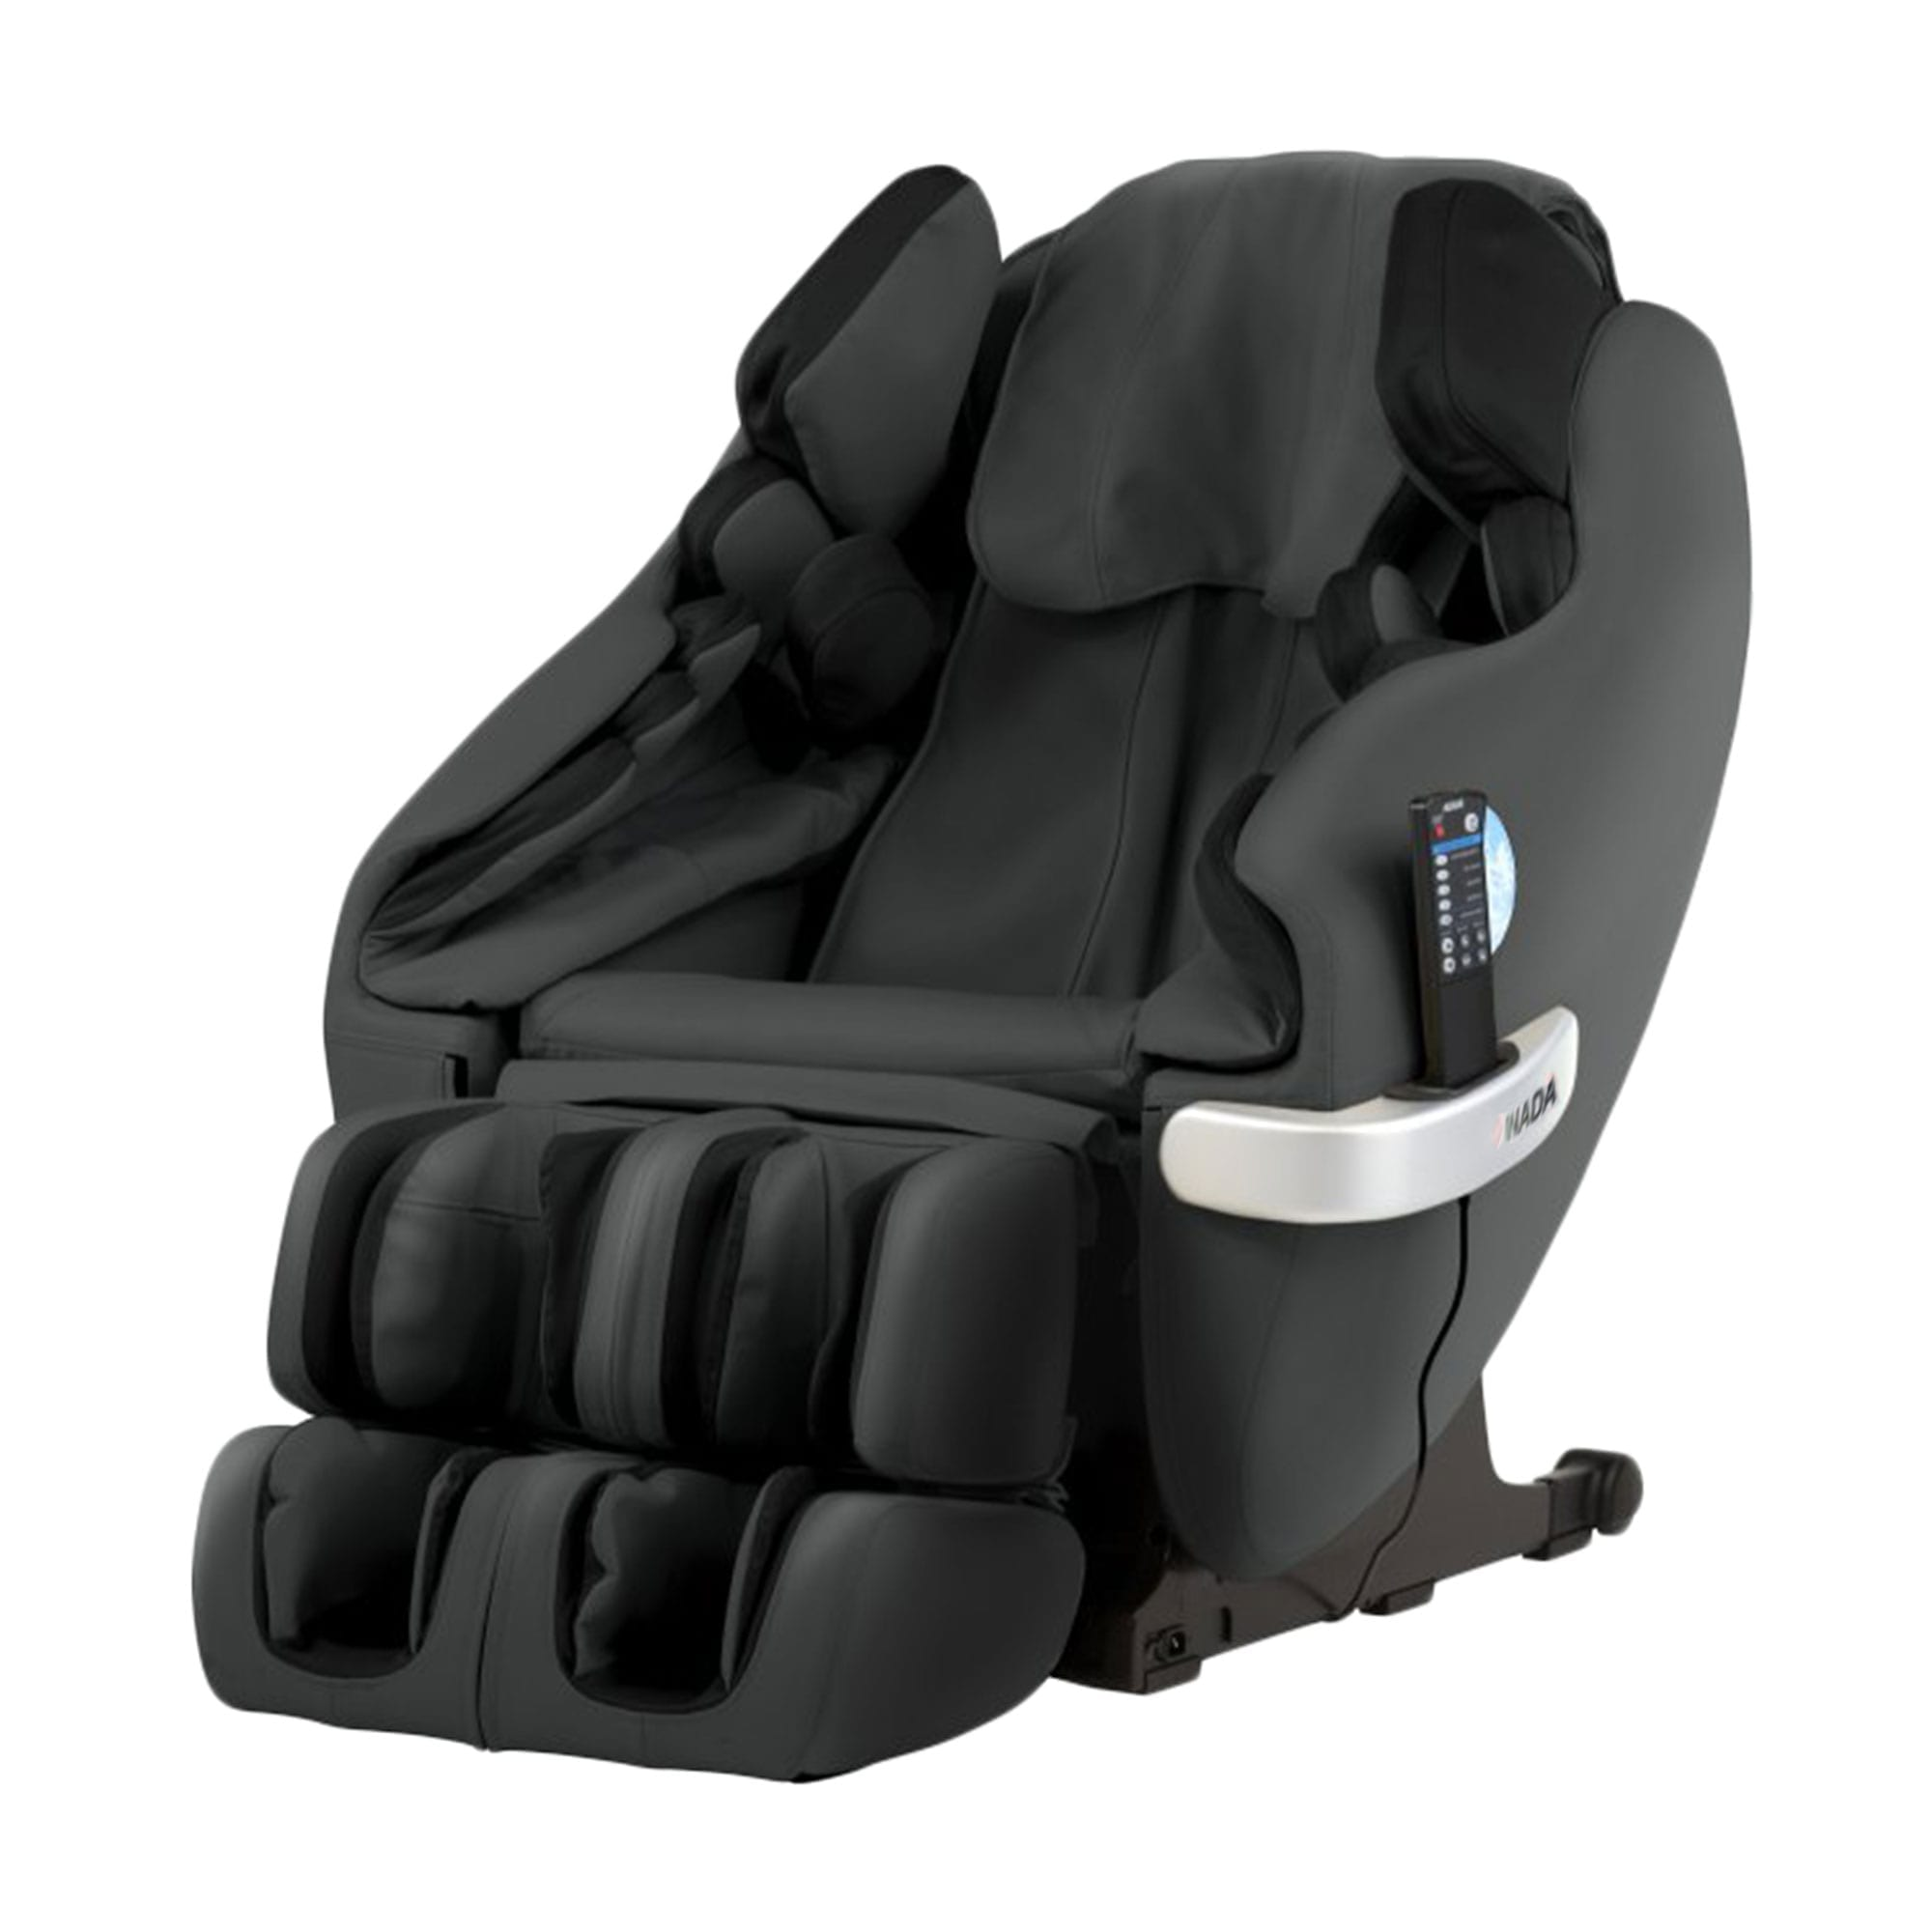 the nest massage chair from inada a truly unique massage chair